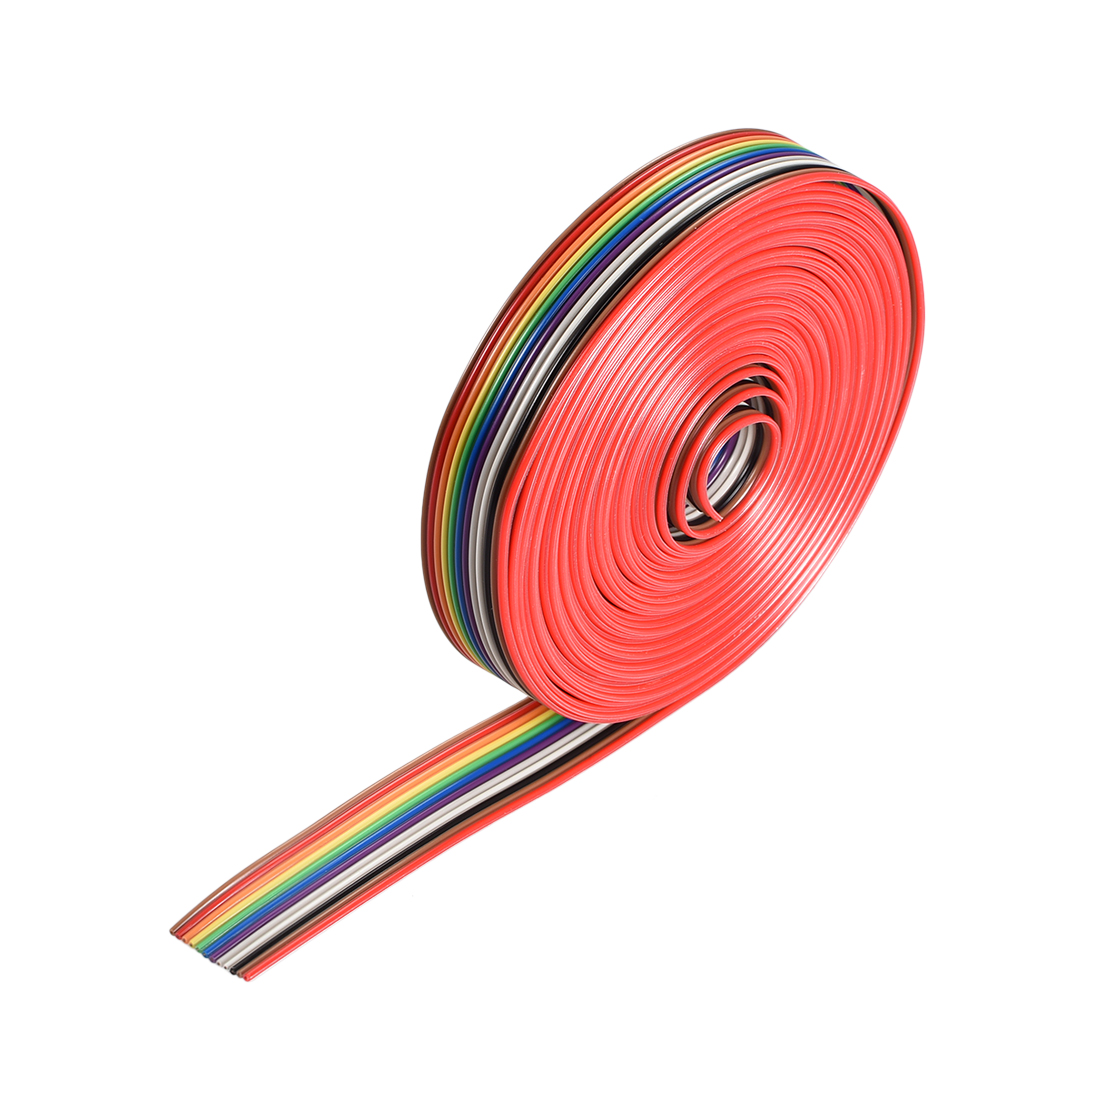 IDC Rainbow Wire Flat Ribbon Cable 12P 1.27mm Pitch 5meter/16.4ft Length